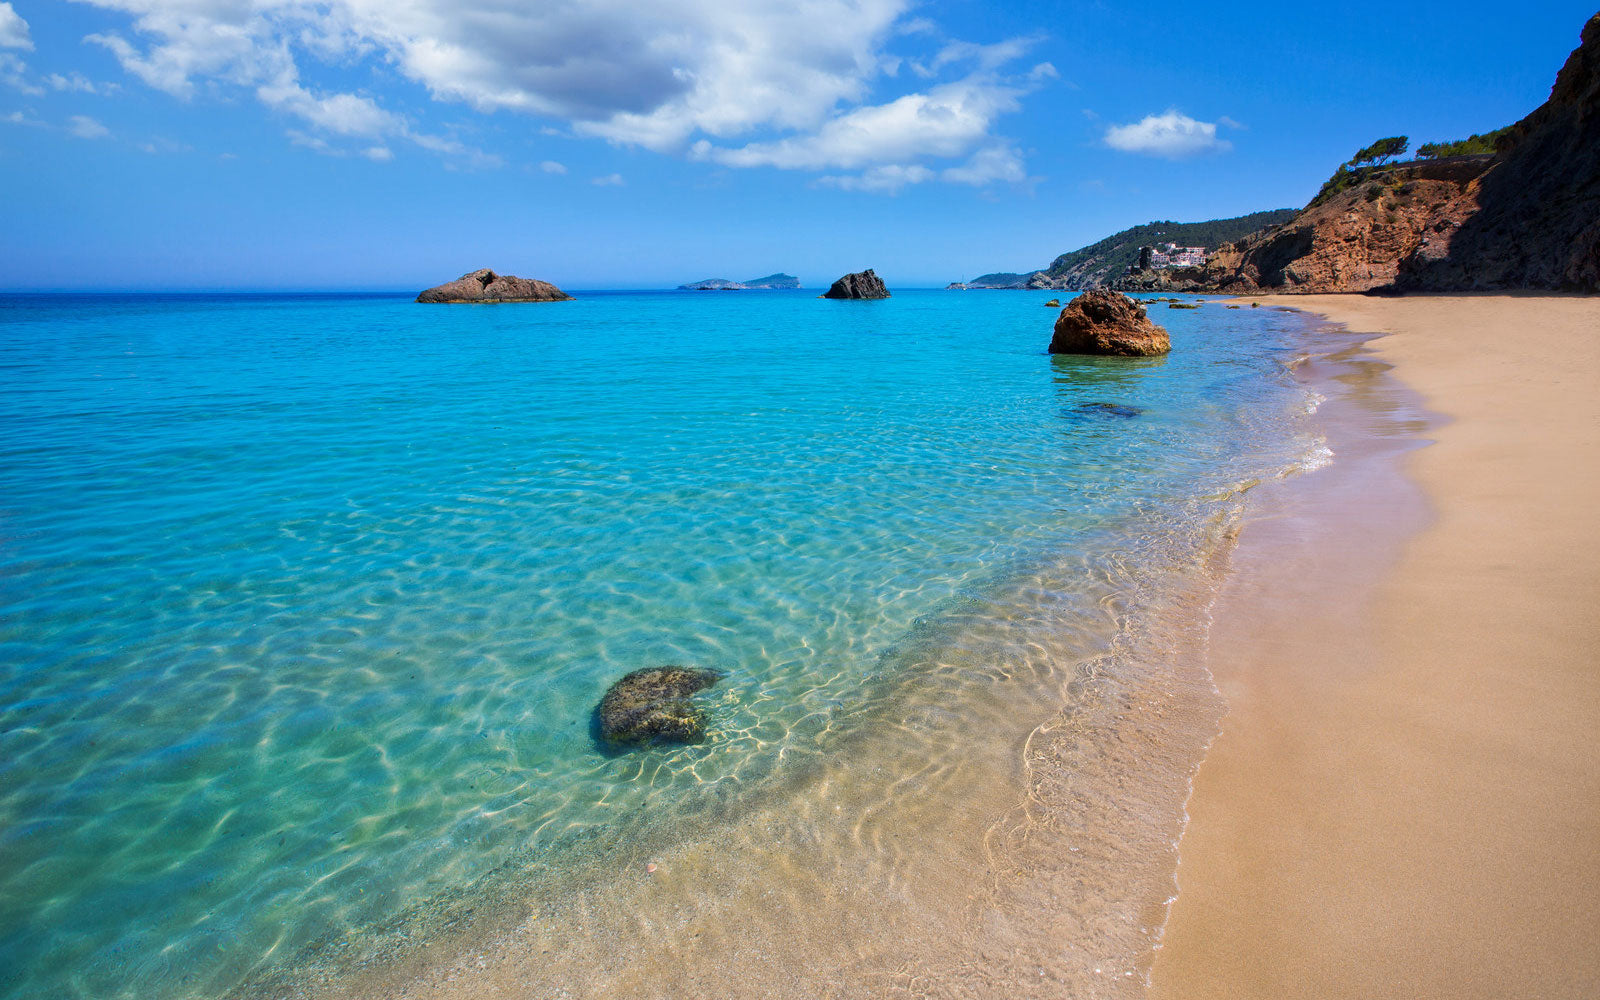 Image Credit: http://www.supercoolbeaches.com/